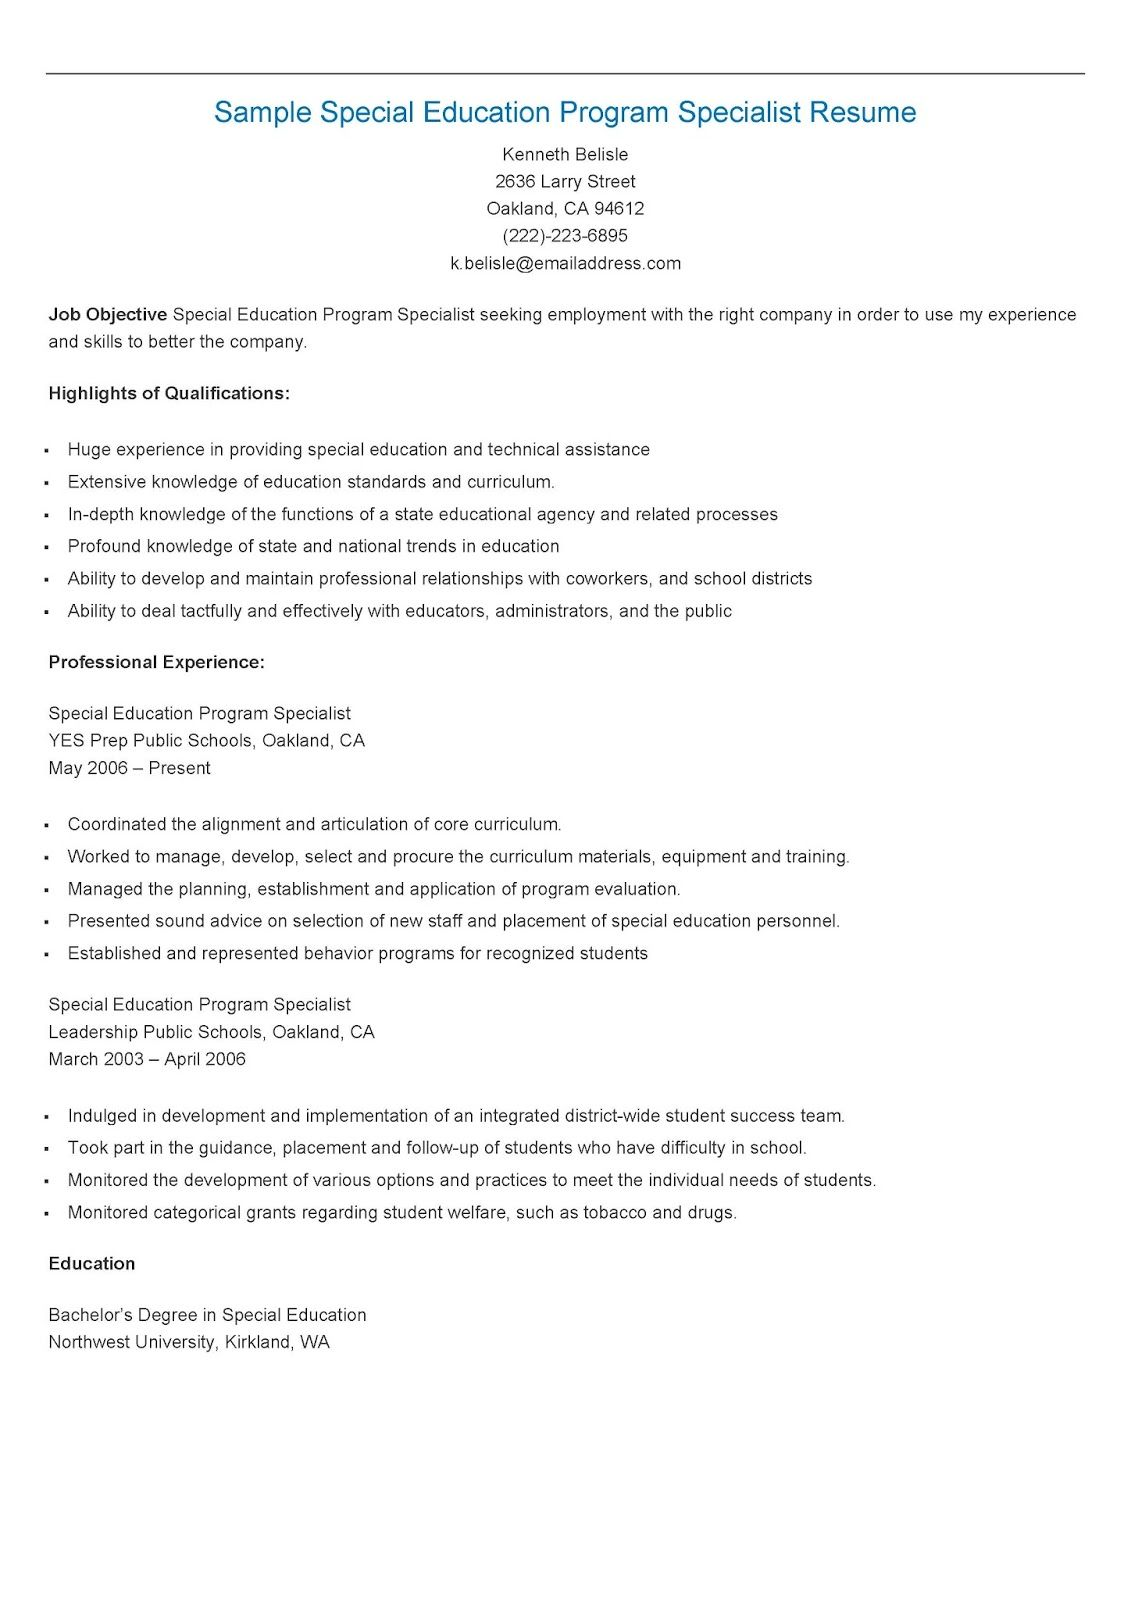 Ad Operations Resume Sample Special Education Program Specialist Resume